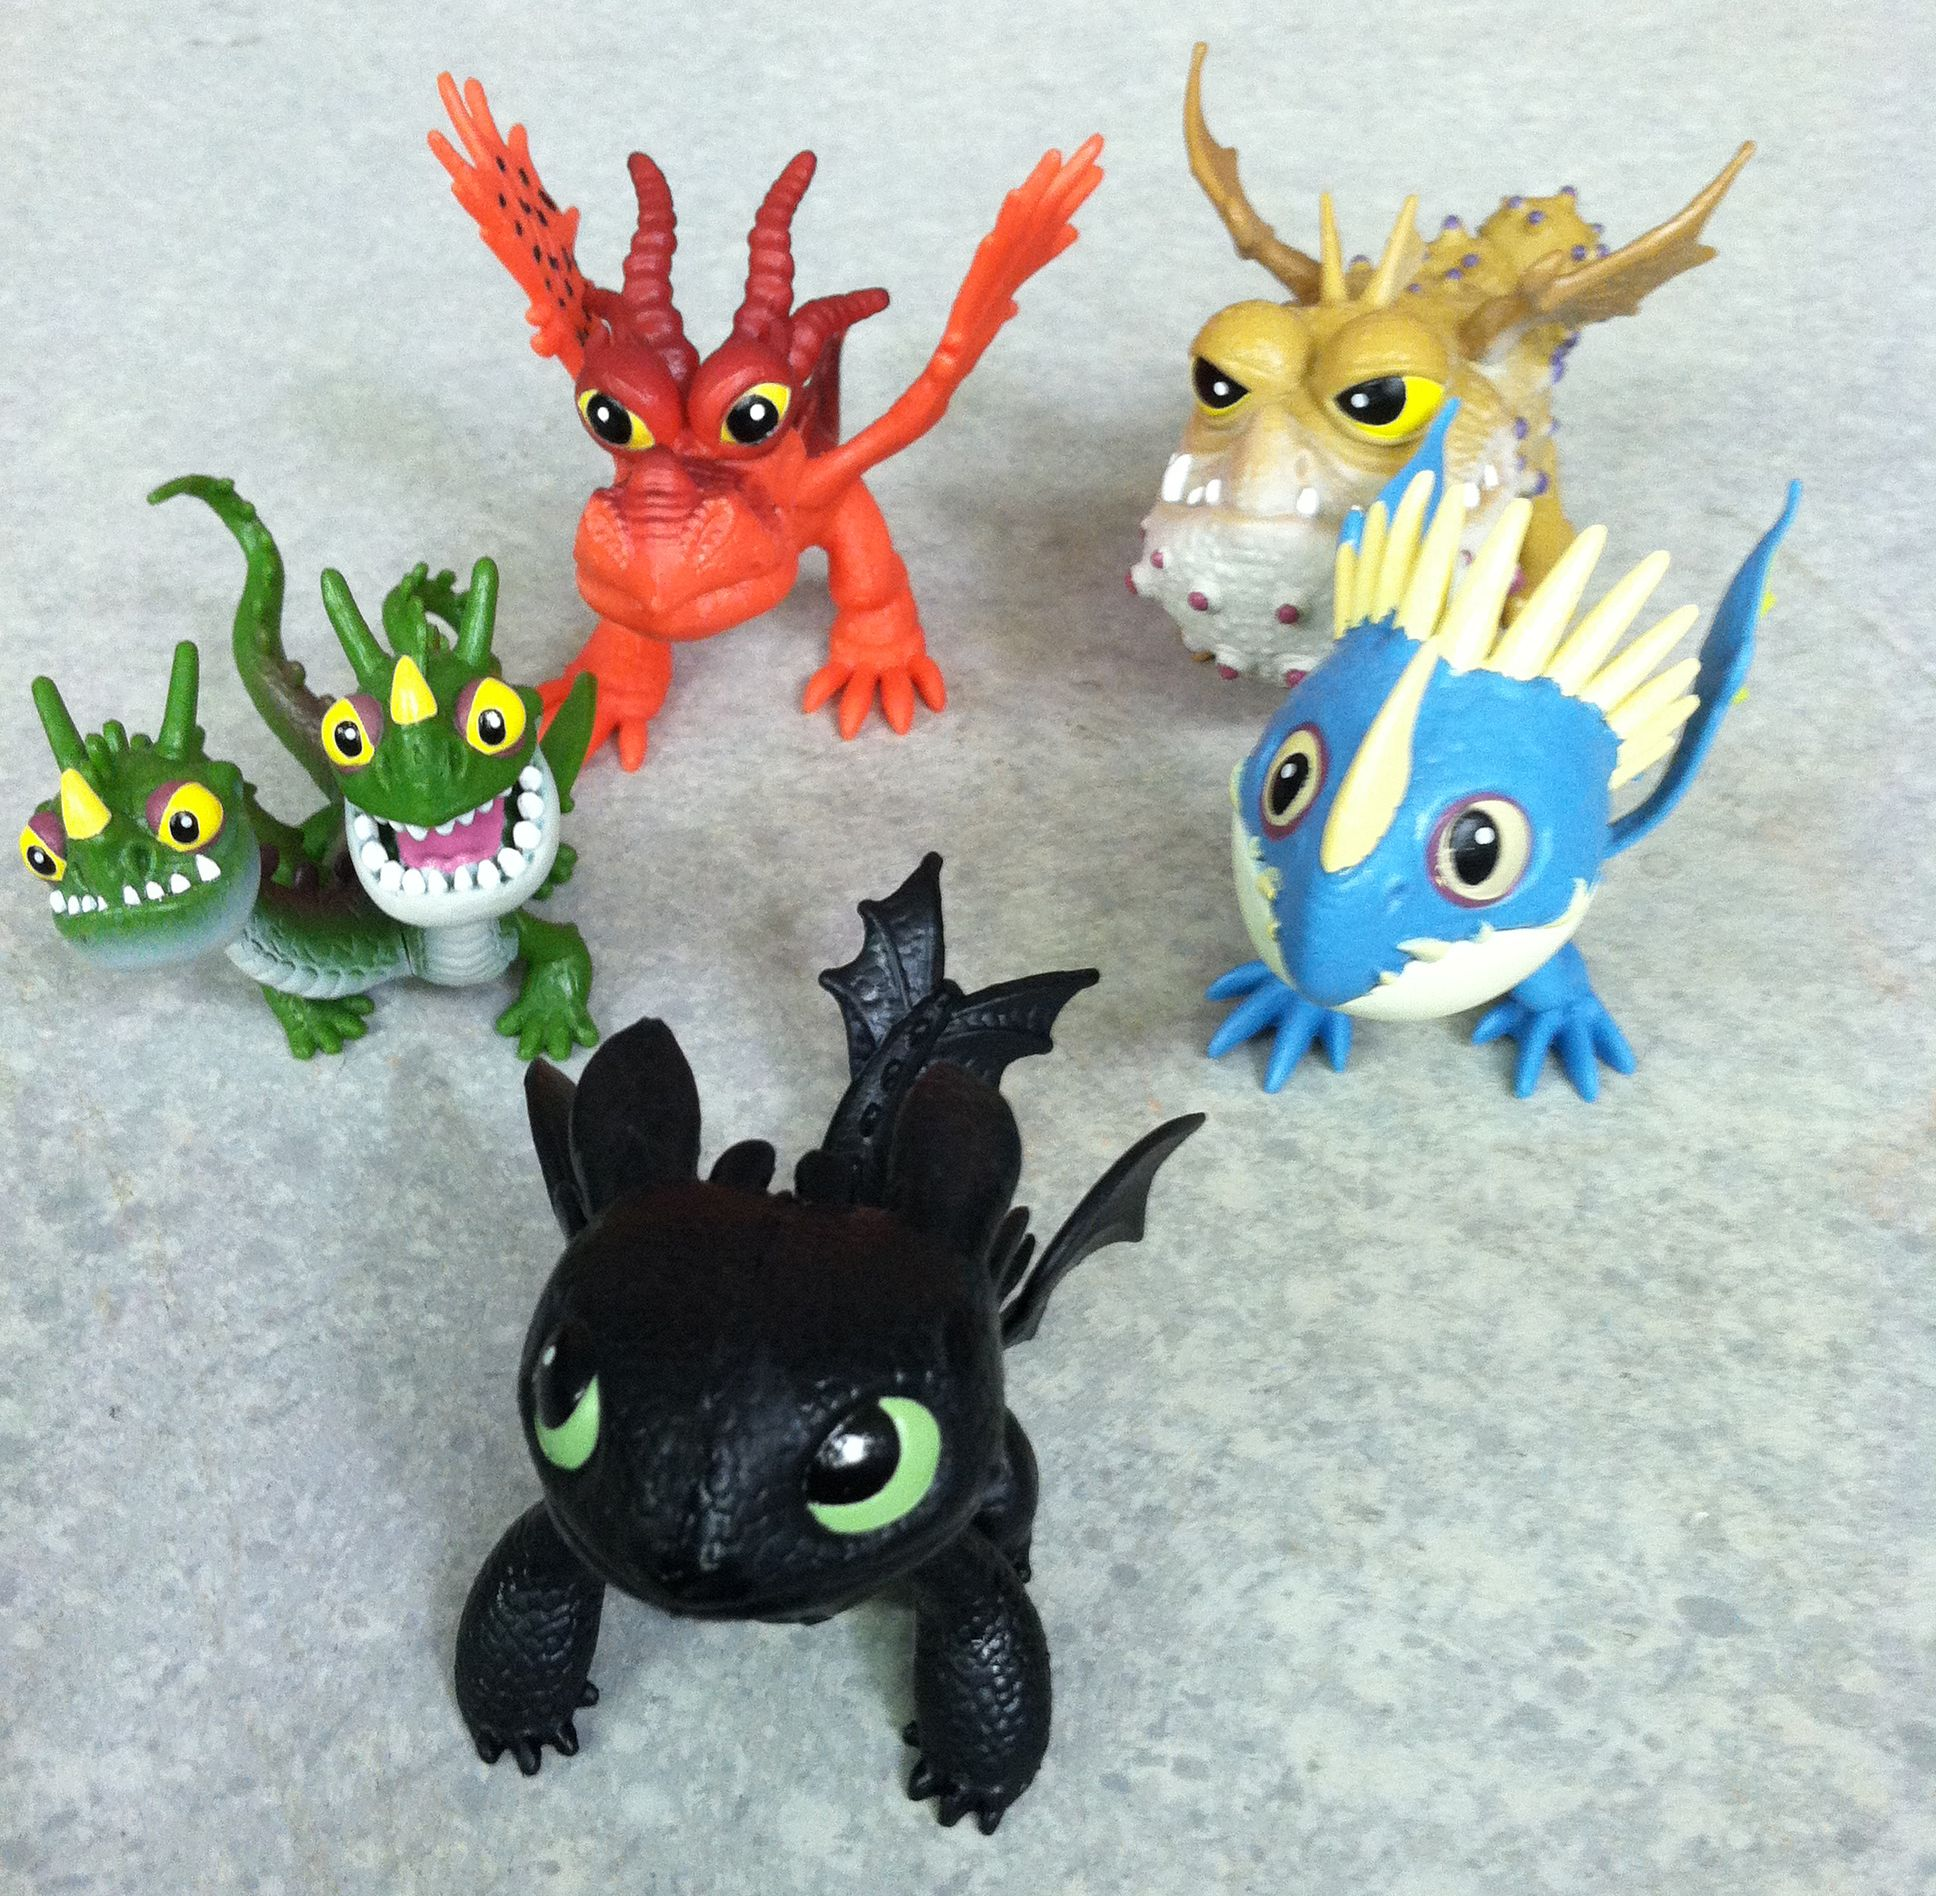 Group Shot Of Our Friends Toothless, Meatlug, Stormfly,